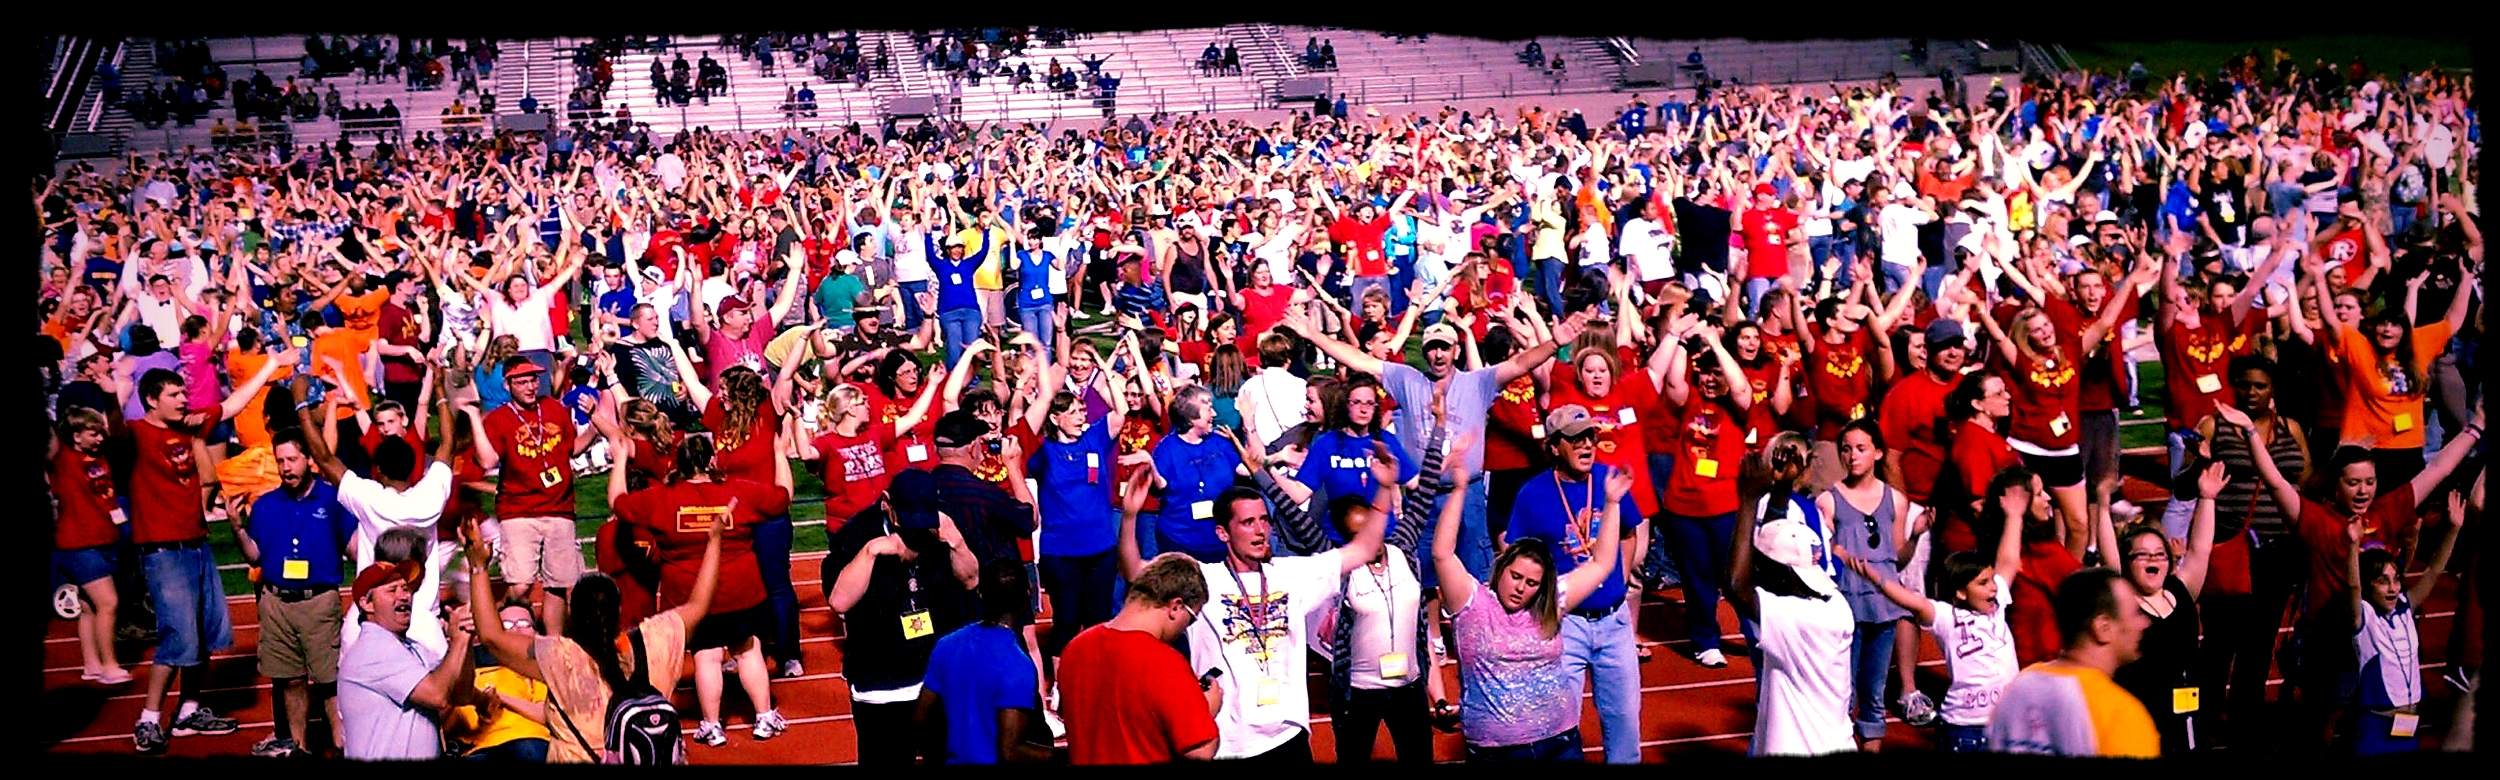 5,000 dancers at the Special Olympics Celebration!